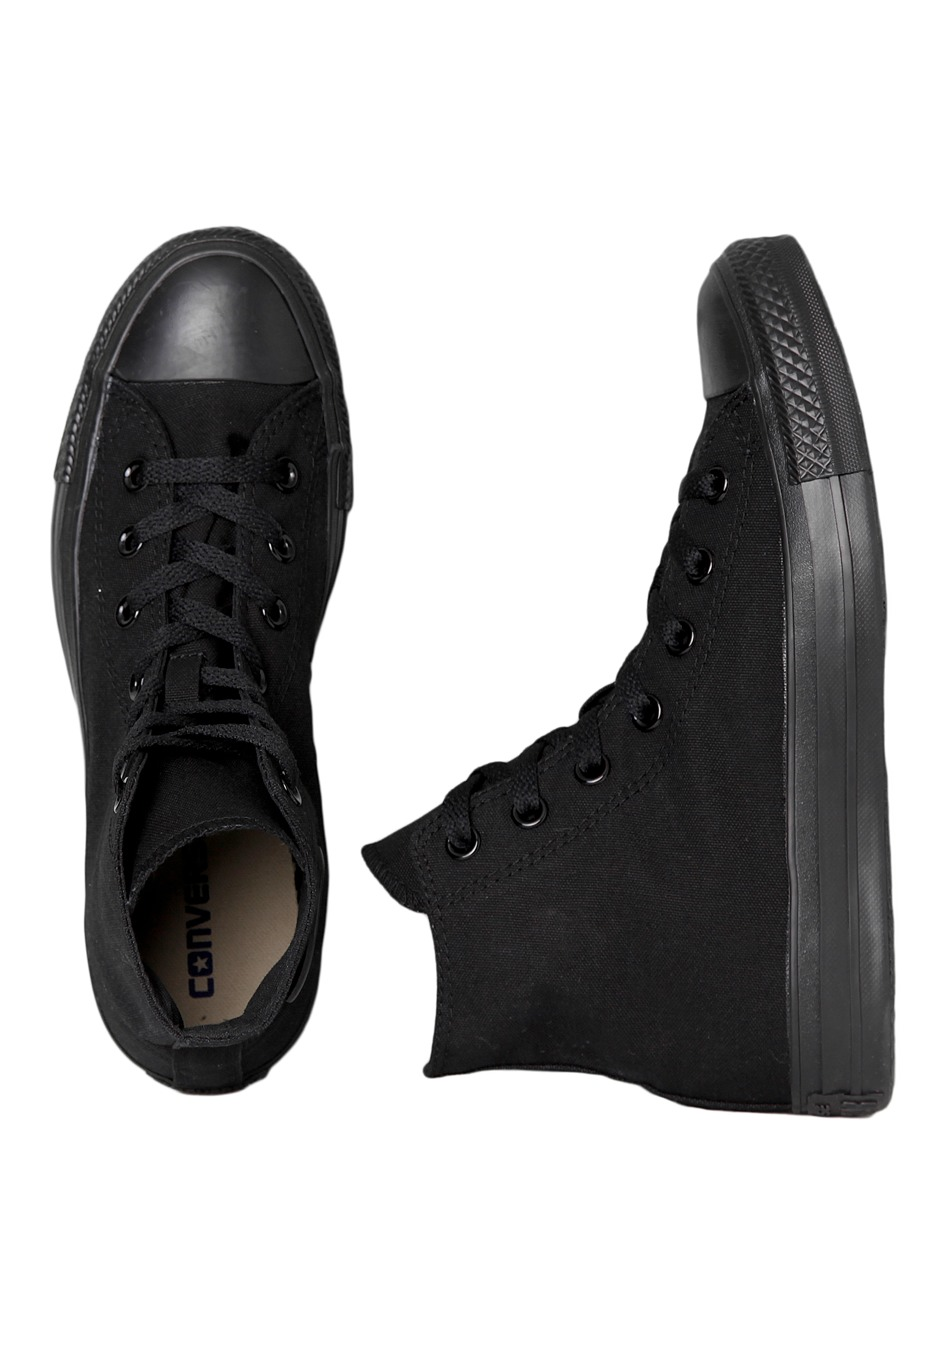 Low Top In Black Monochrome Shoes For Sale Australia